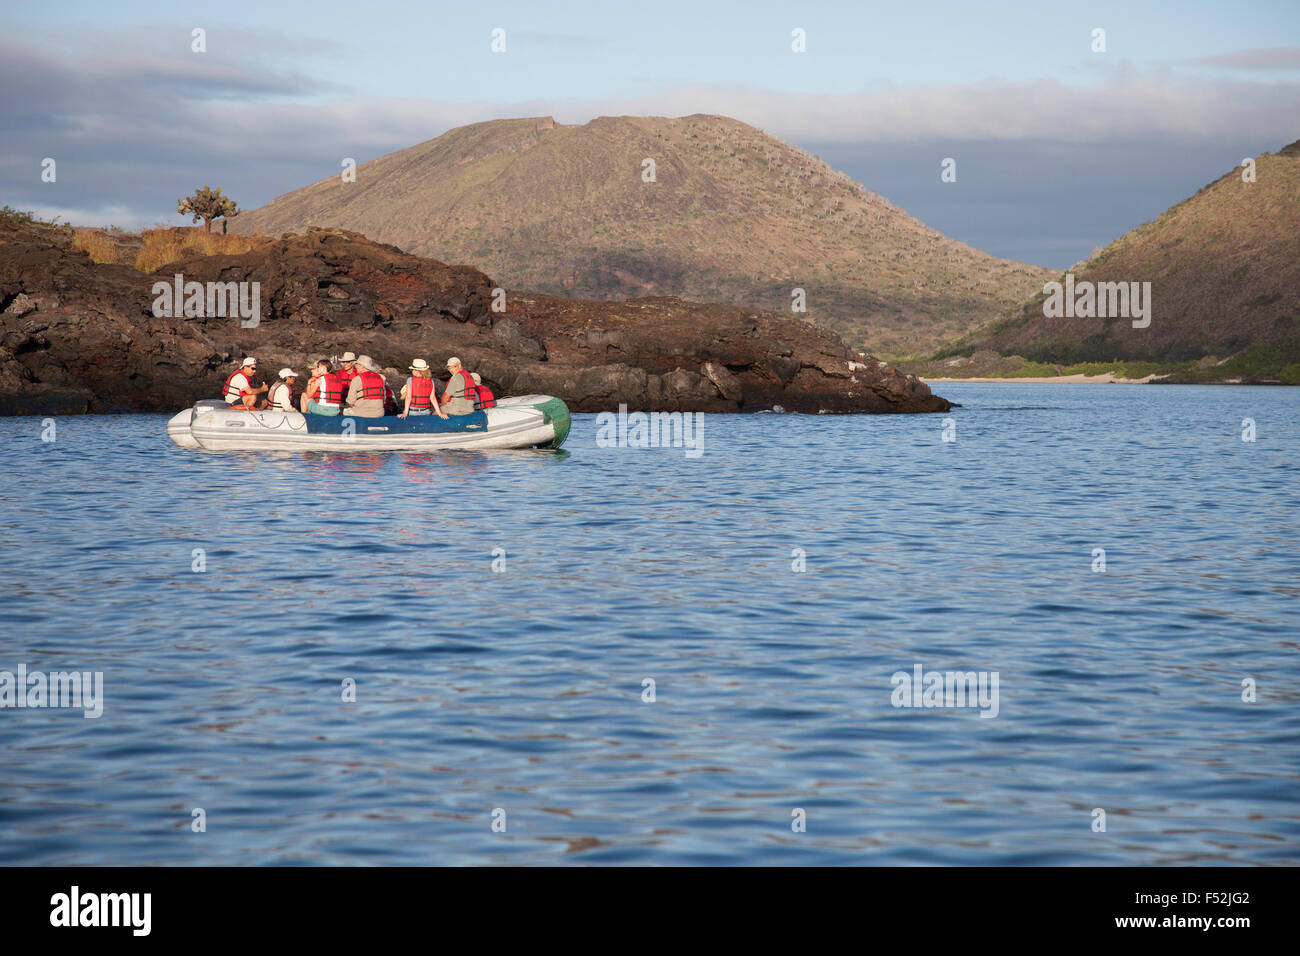 Tourists viewing volcanic landscape from panga - Stock Image